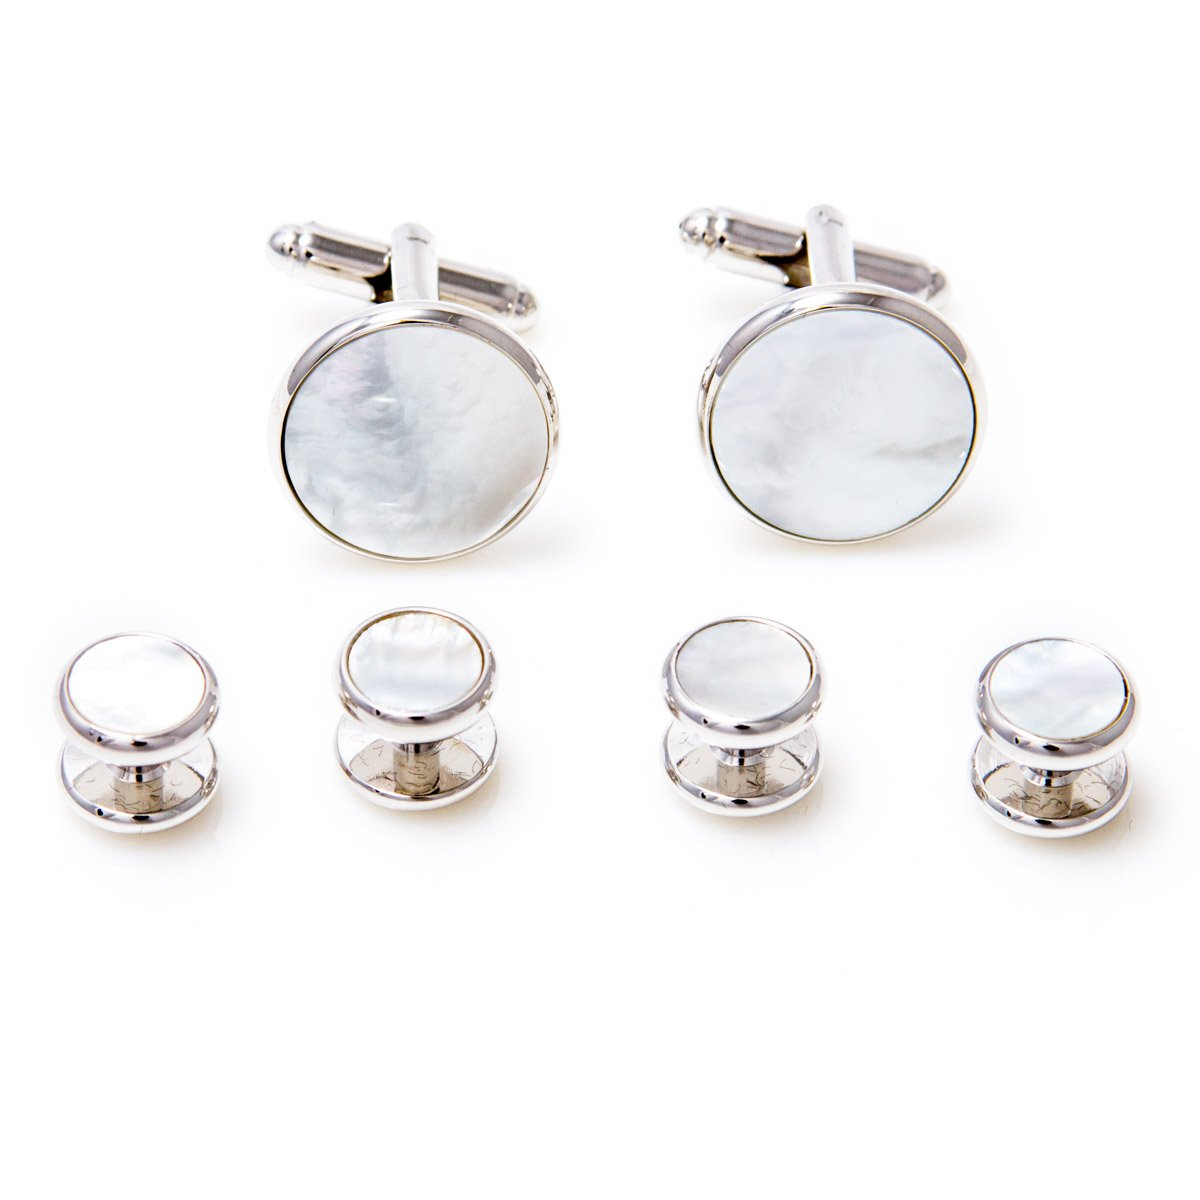 MRCUFF Mother of Pearl Cufflinks and Studs Tuxedo Set in a Presentation Gift Box & Polishing Cloth